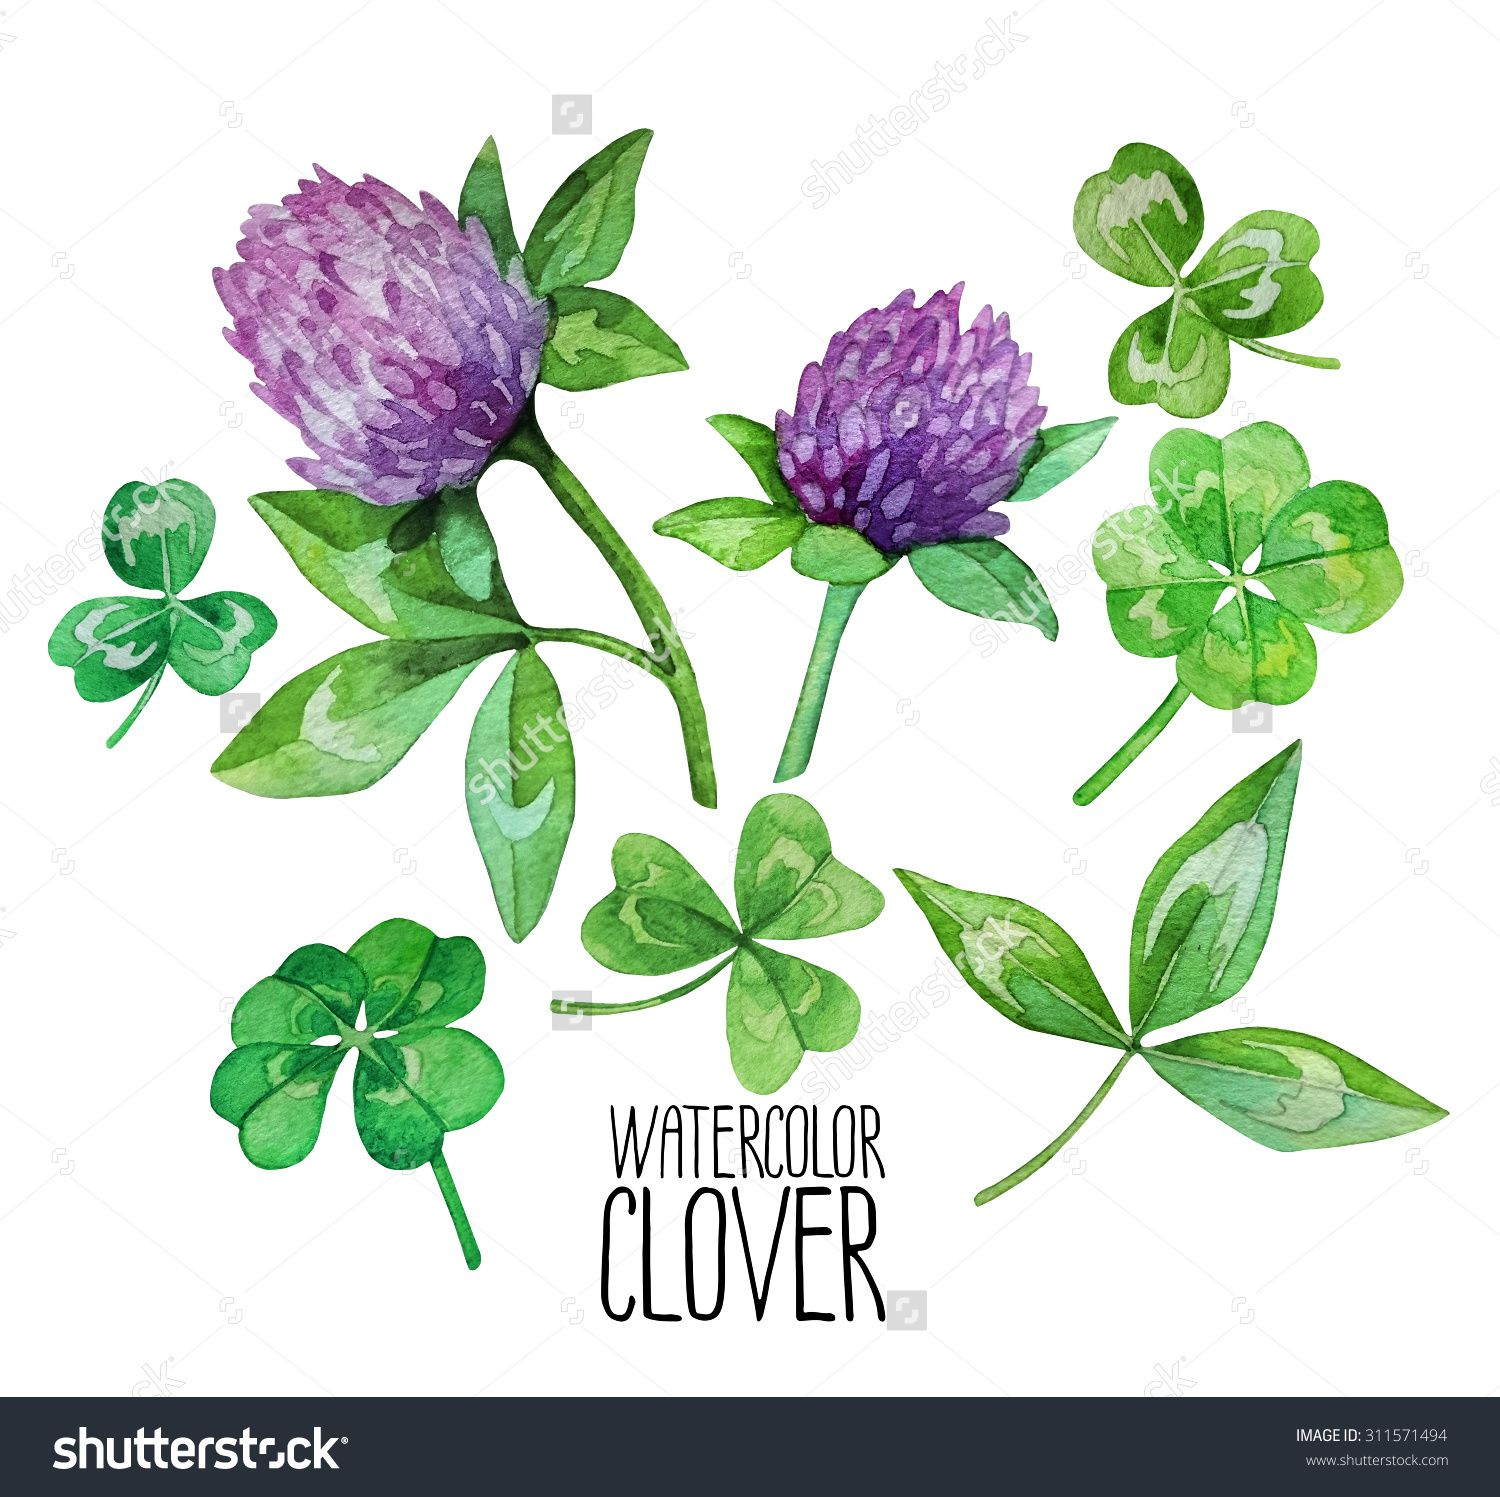 flowering clover watercolor google search mrs vessel tat